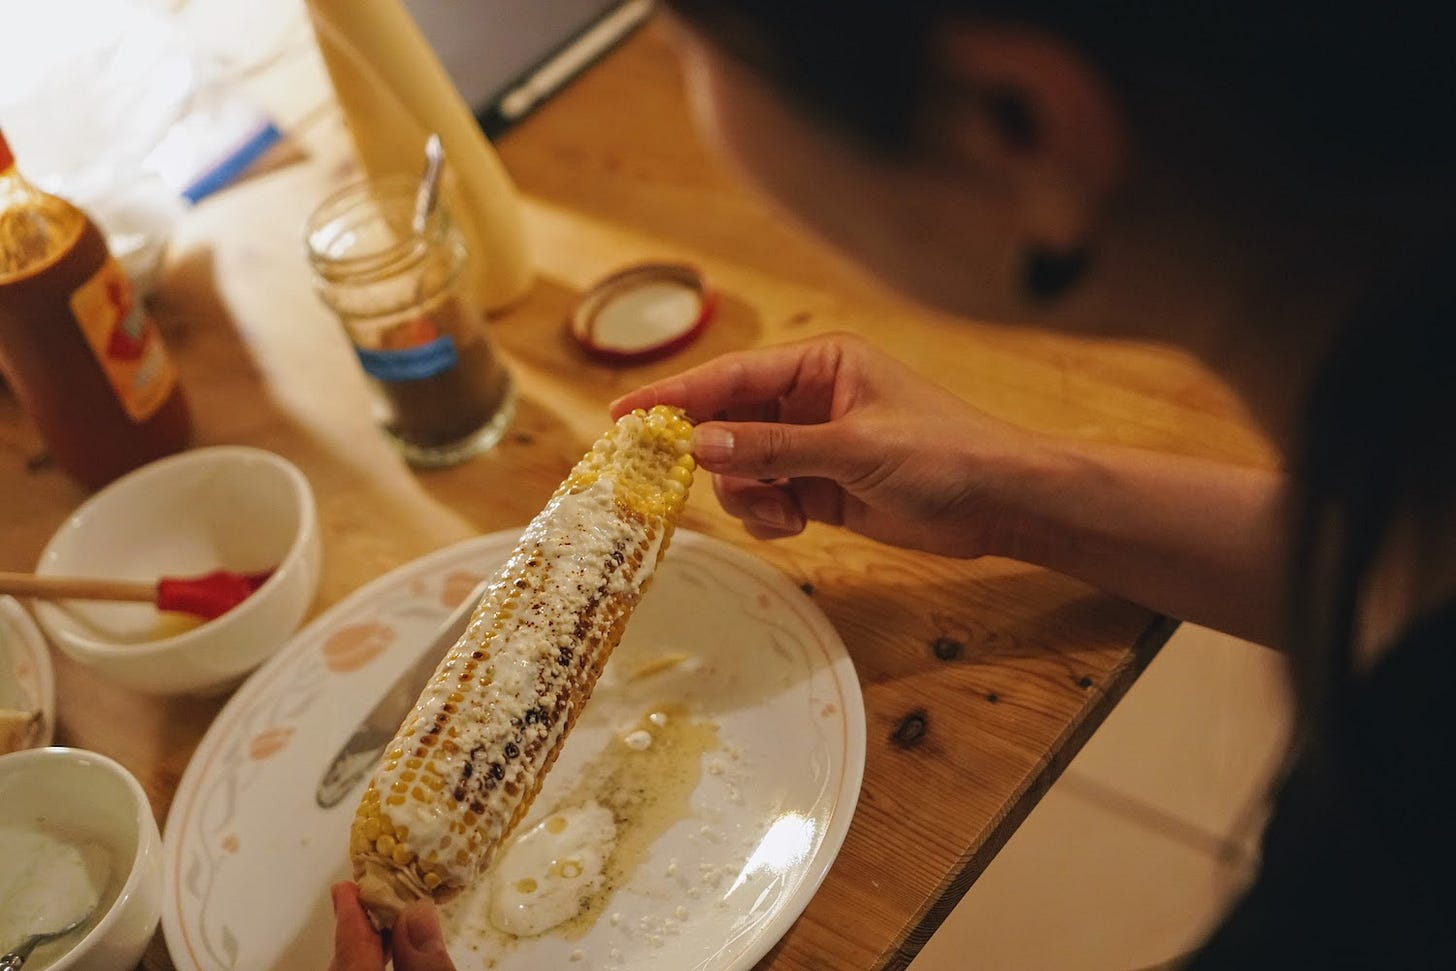 Grilled corn topped with butter and cheese in Yoko's hands